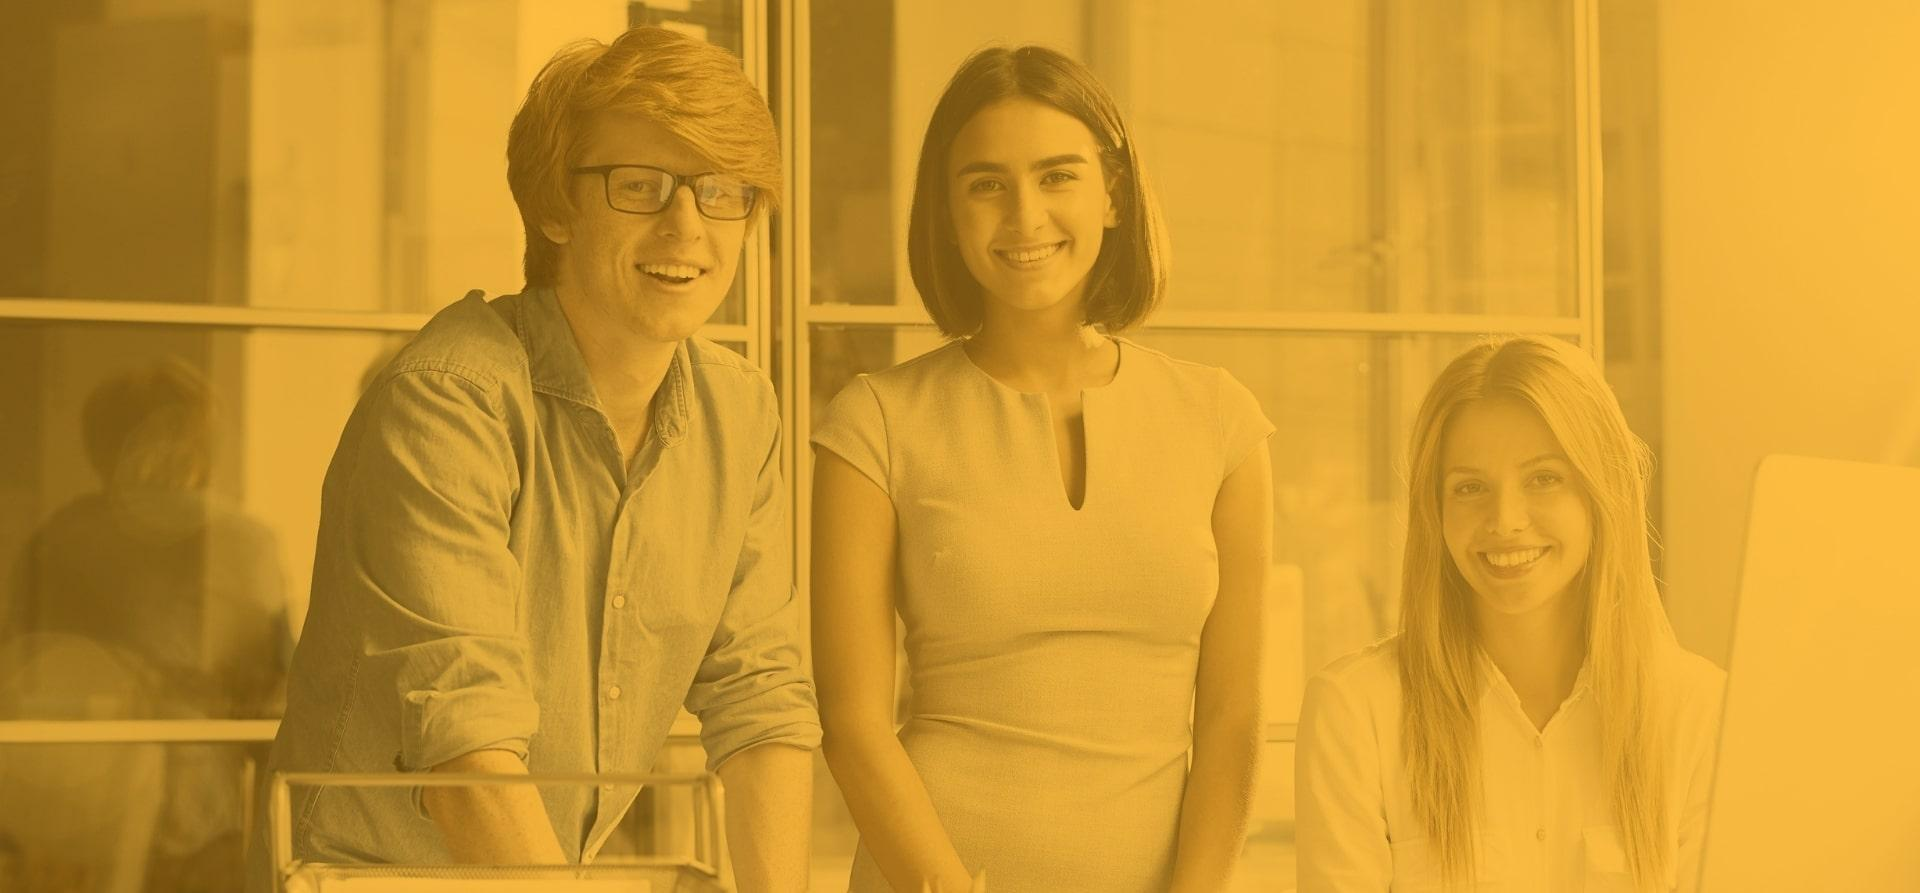 How Can Graduates Turn an Internship into a Full-Time Position (Part 2) article